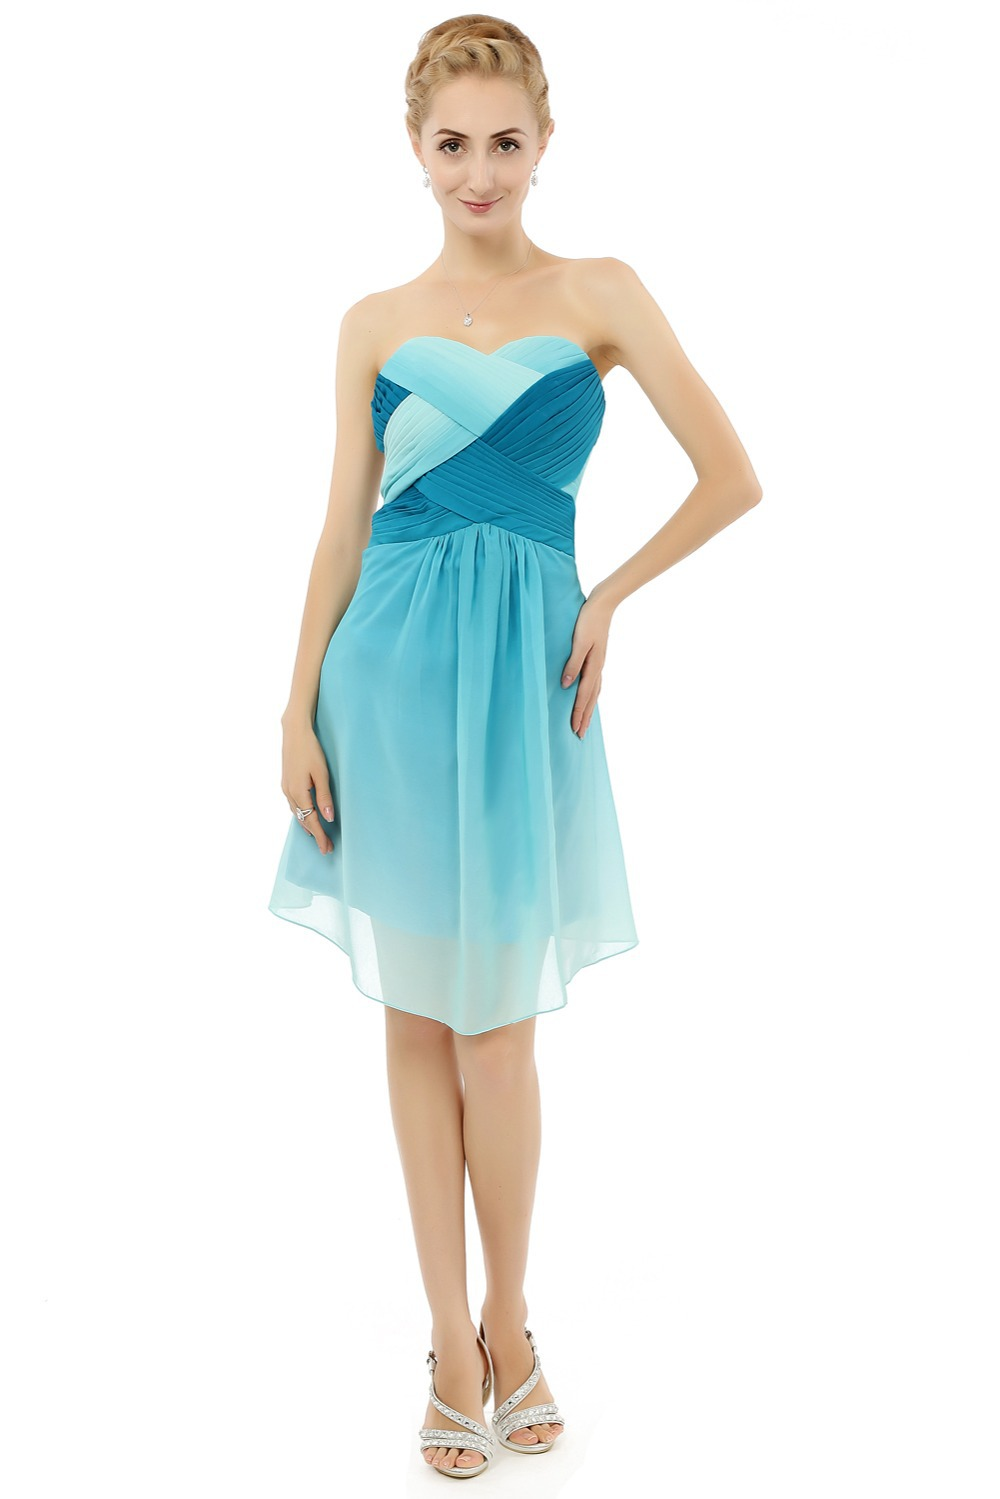 Prom Dresses For High School - Holiday Dresses